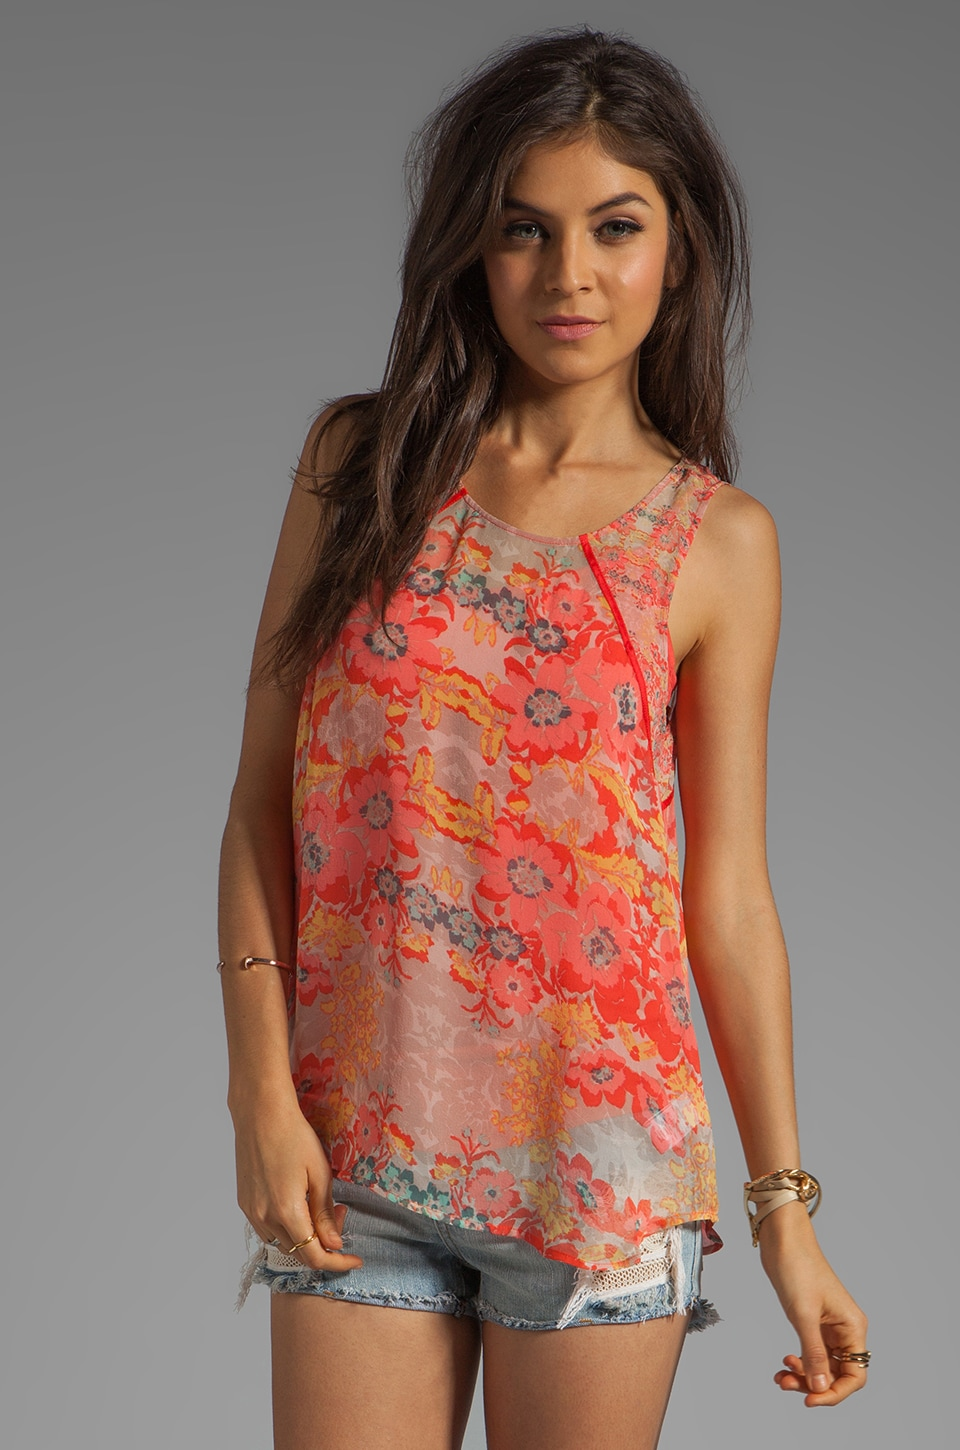 Ella Moss Floral Lei Tank in Coral